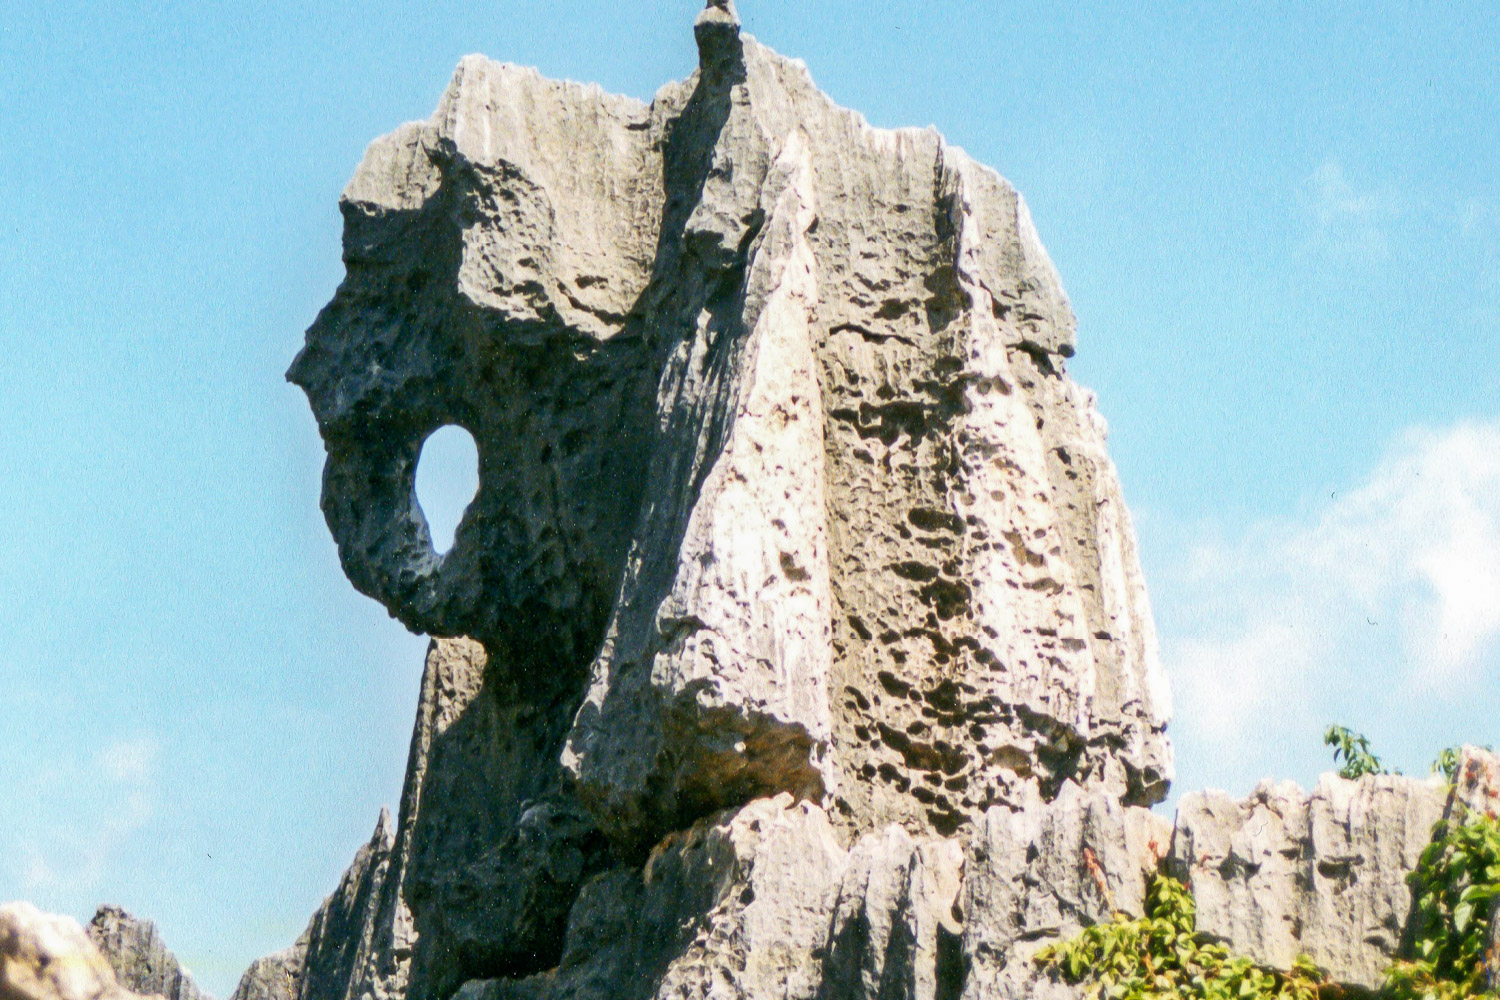 Shilin Stone Forest Yunnan Province China